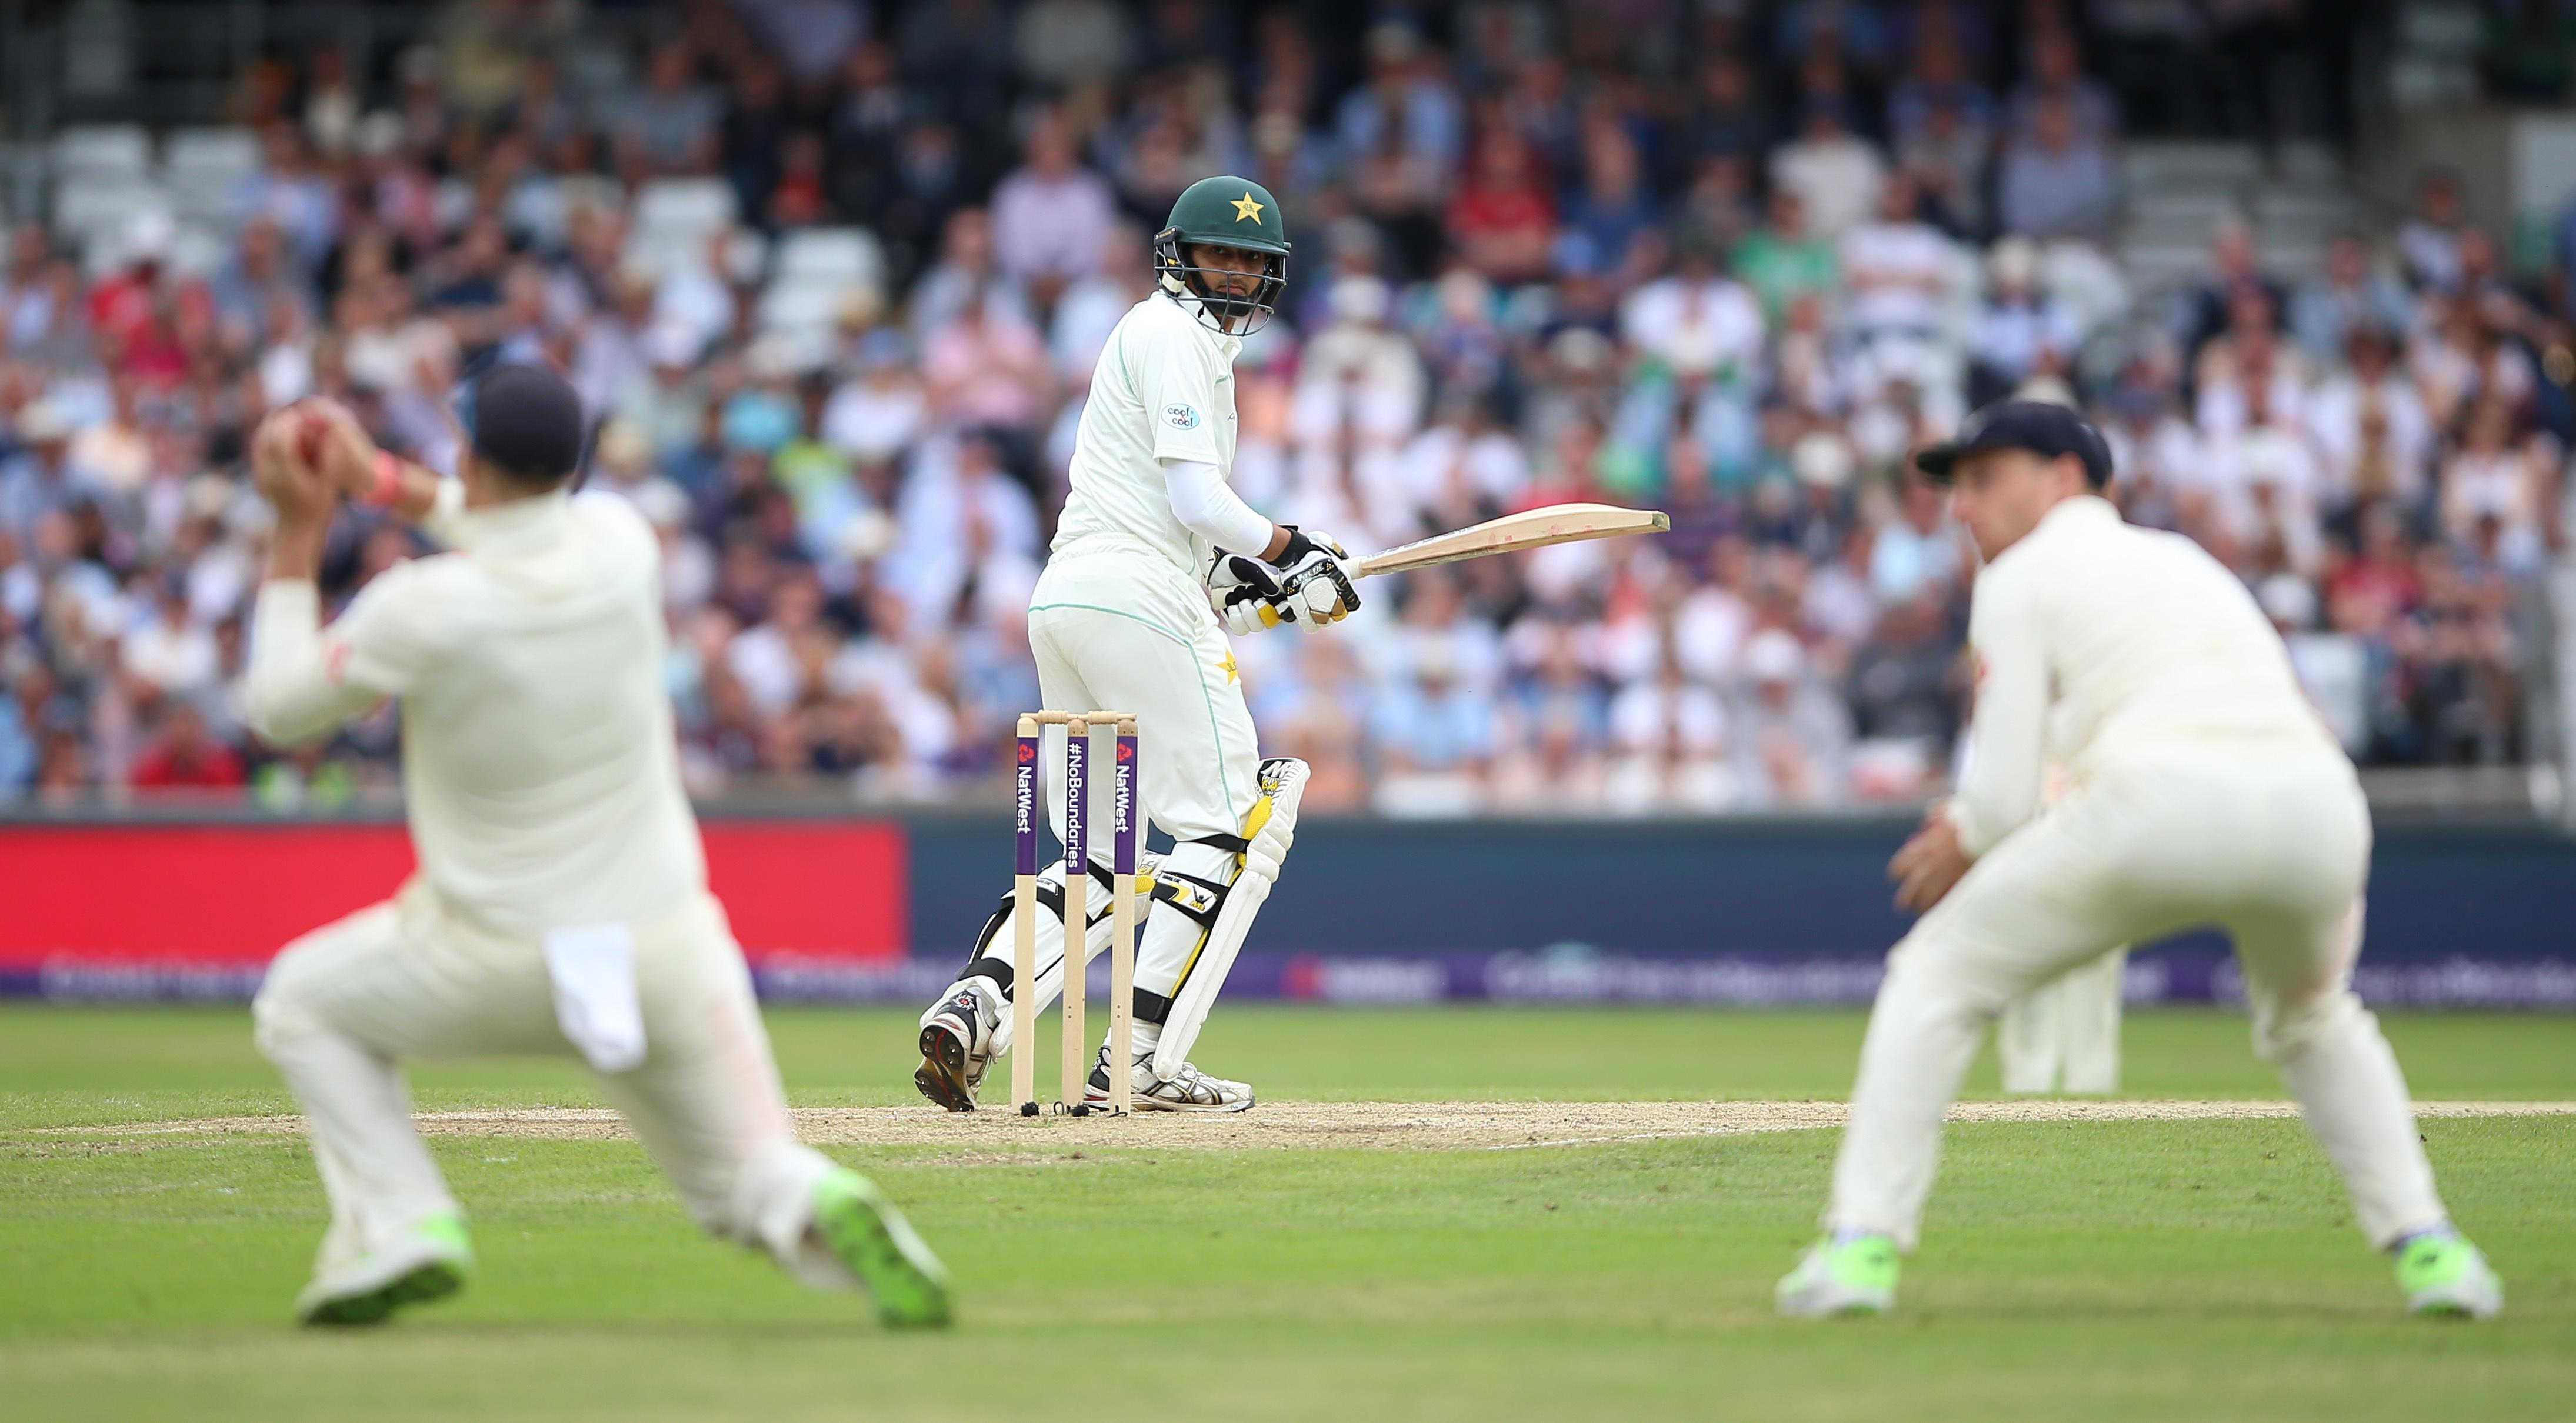 England ace Joe Root took a catch in the field